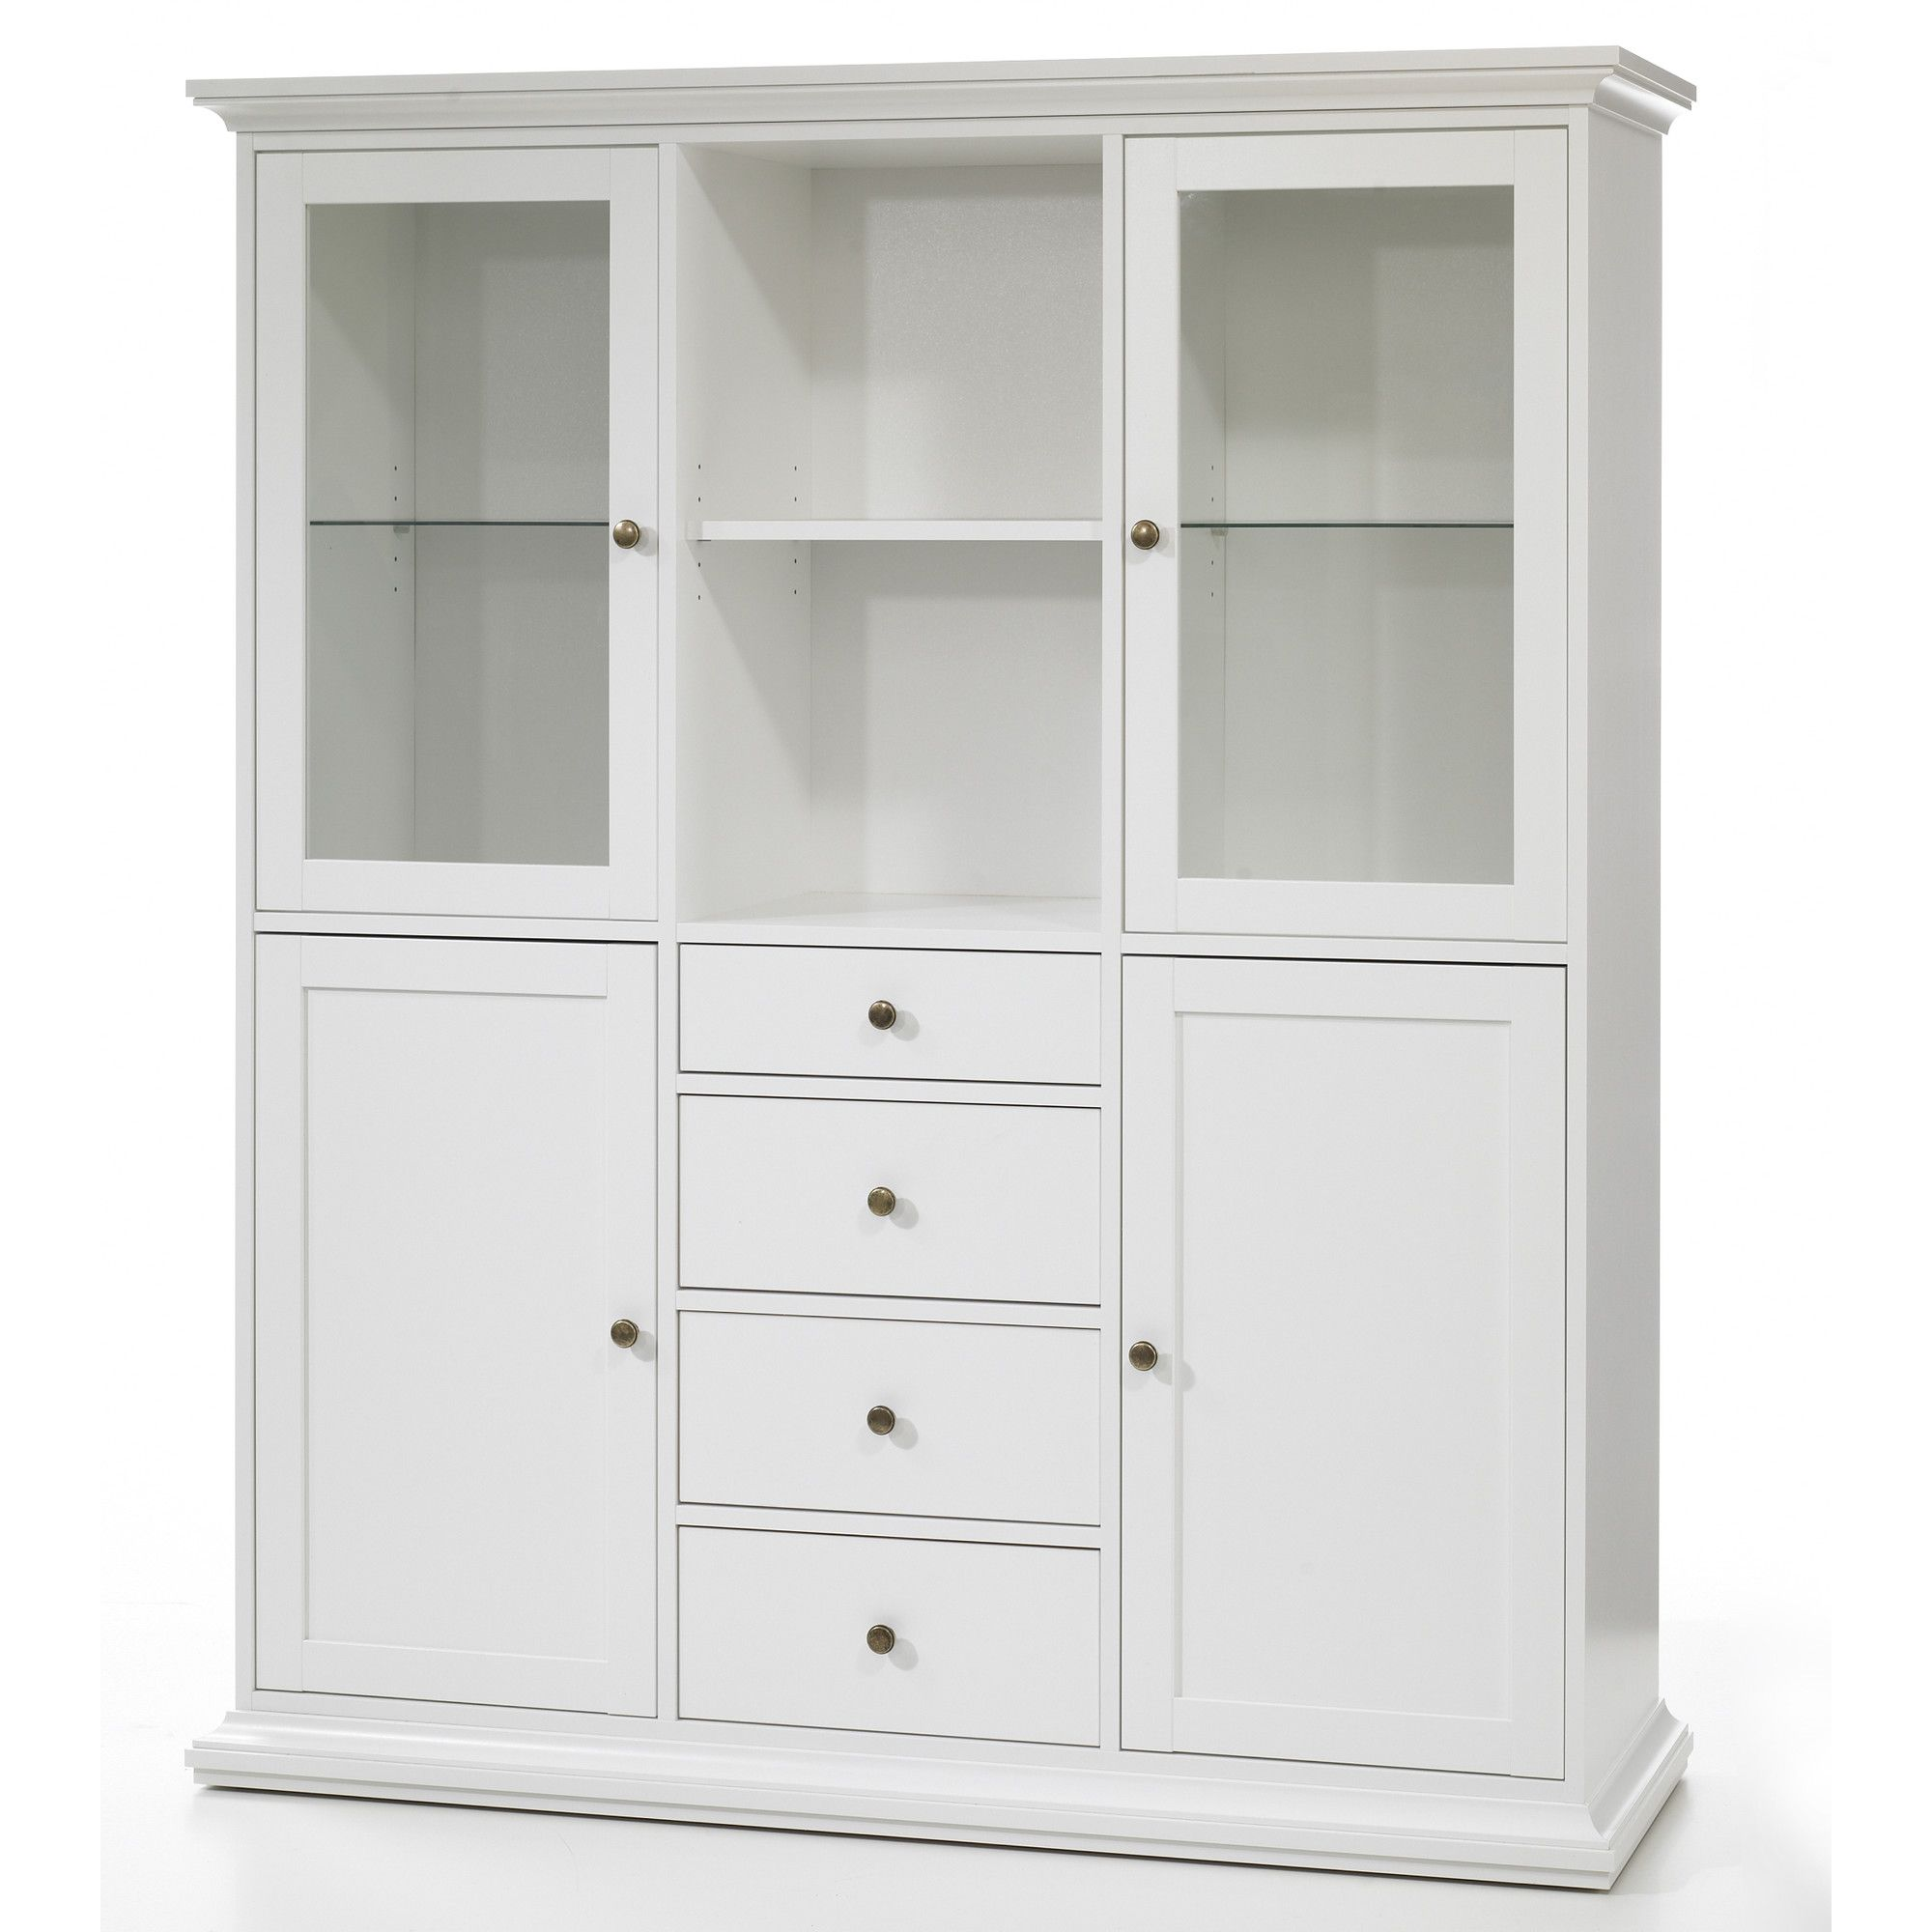 Tvilum Paris Sideboard with Four Doors and Four Drawers in White at Tesco Direct